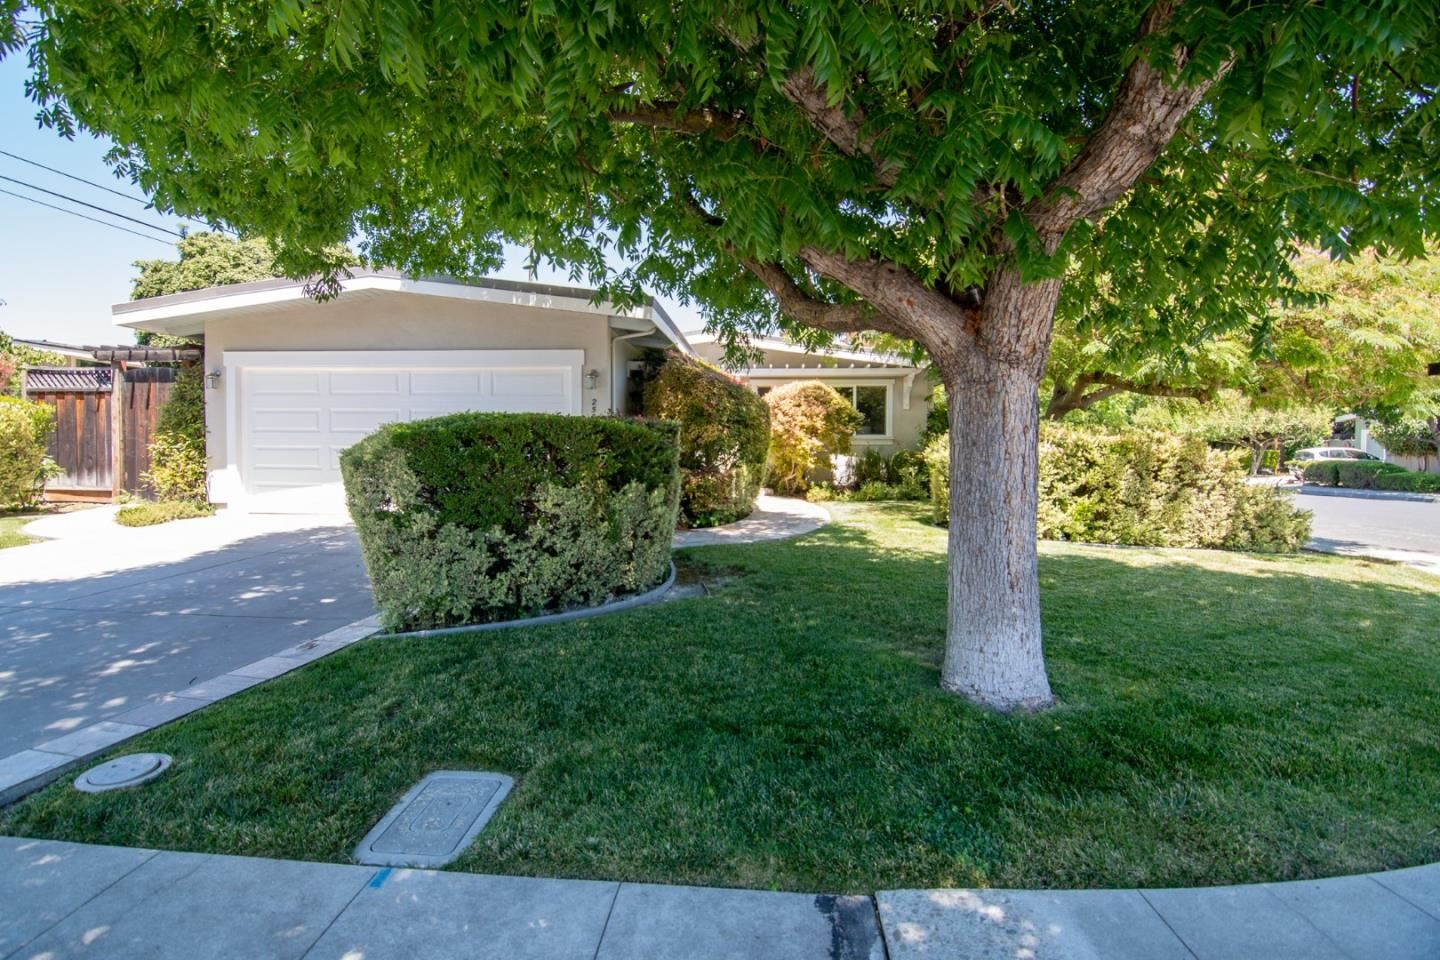 Photo for 2500 Mardell WAY, MOUNTAIN VIEW, CA 94043 (MLS # ML81803931)